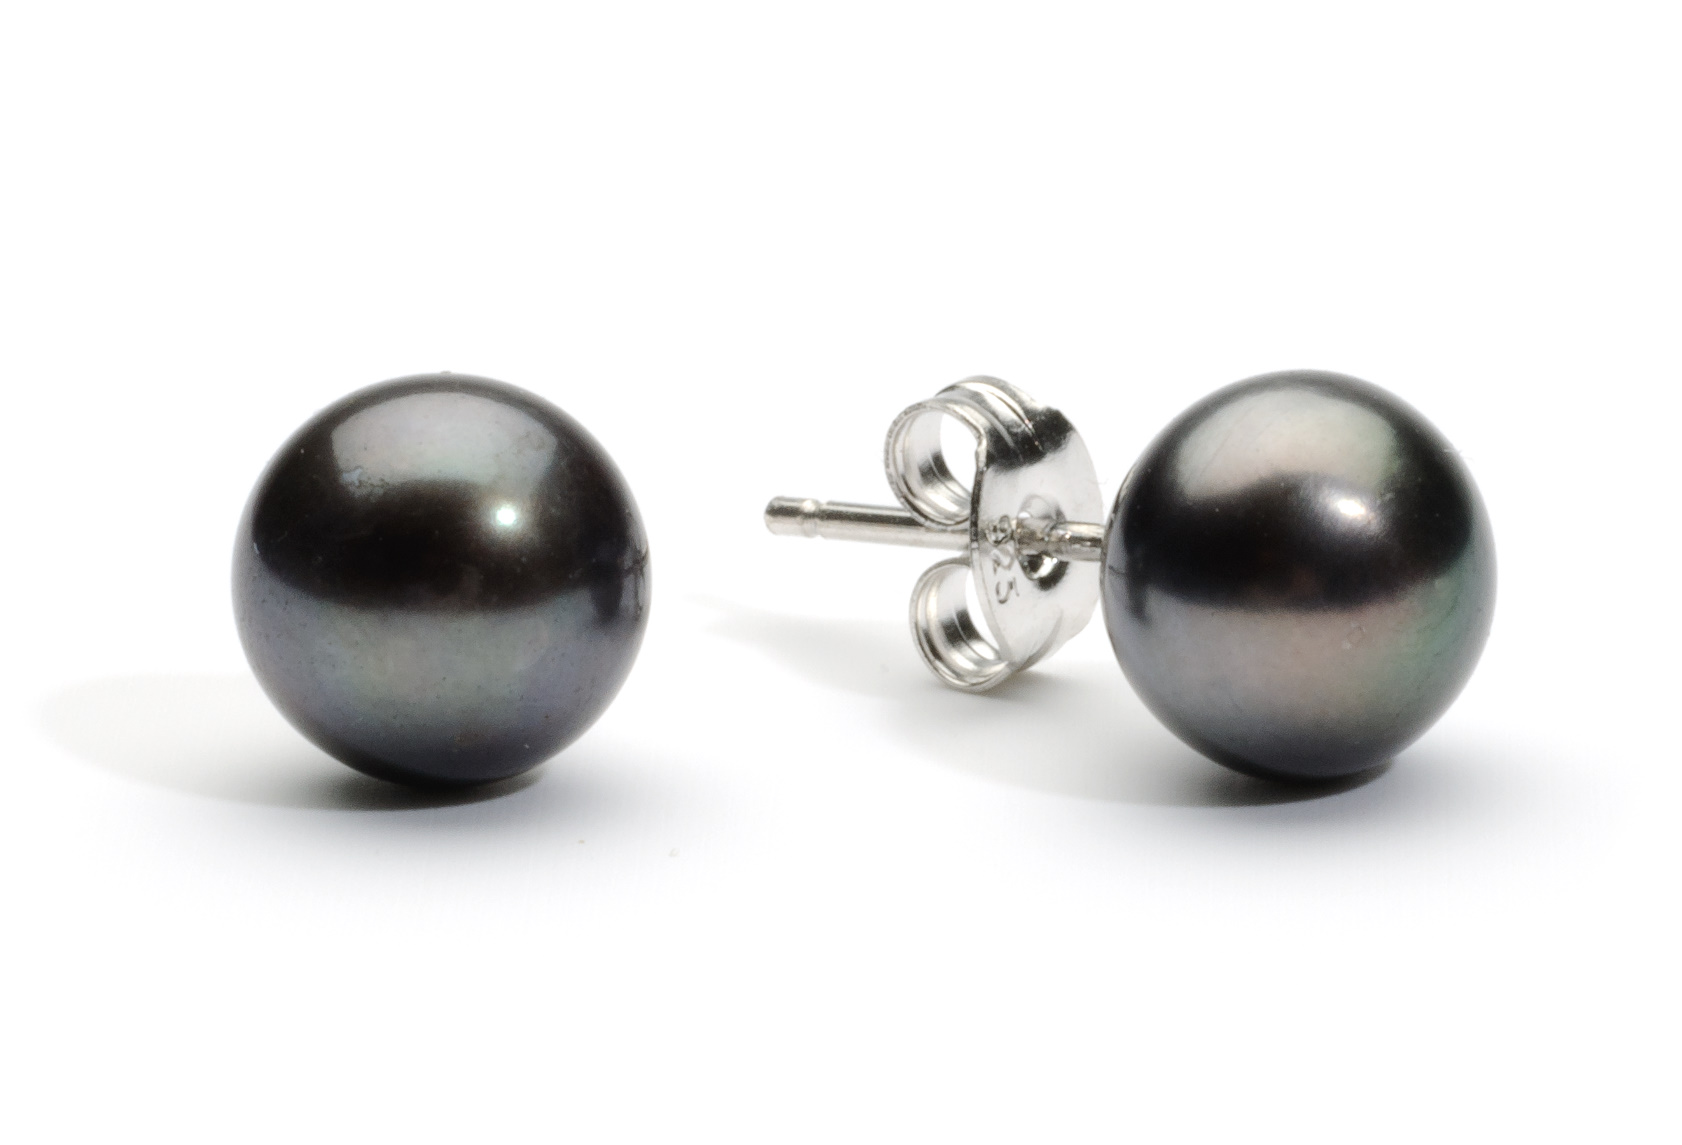 fiji selection pearls stock photo lip holds hands black a of oyster raw